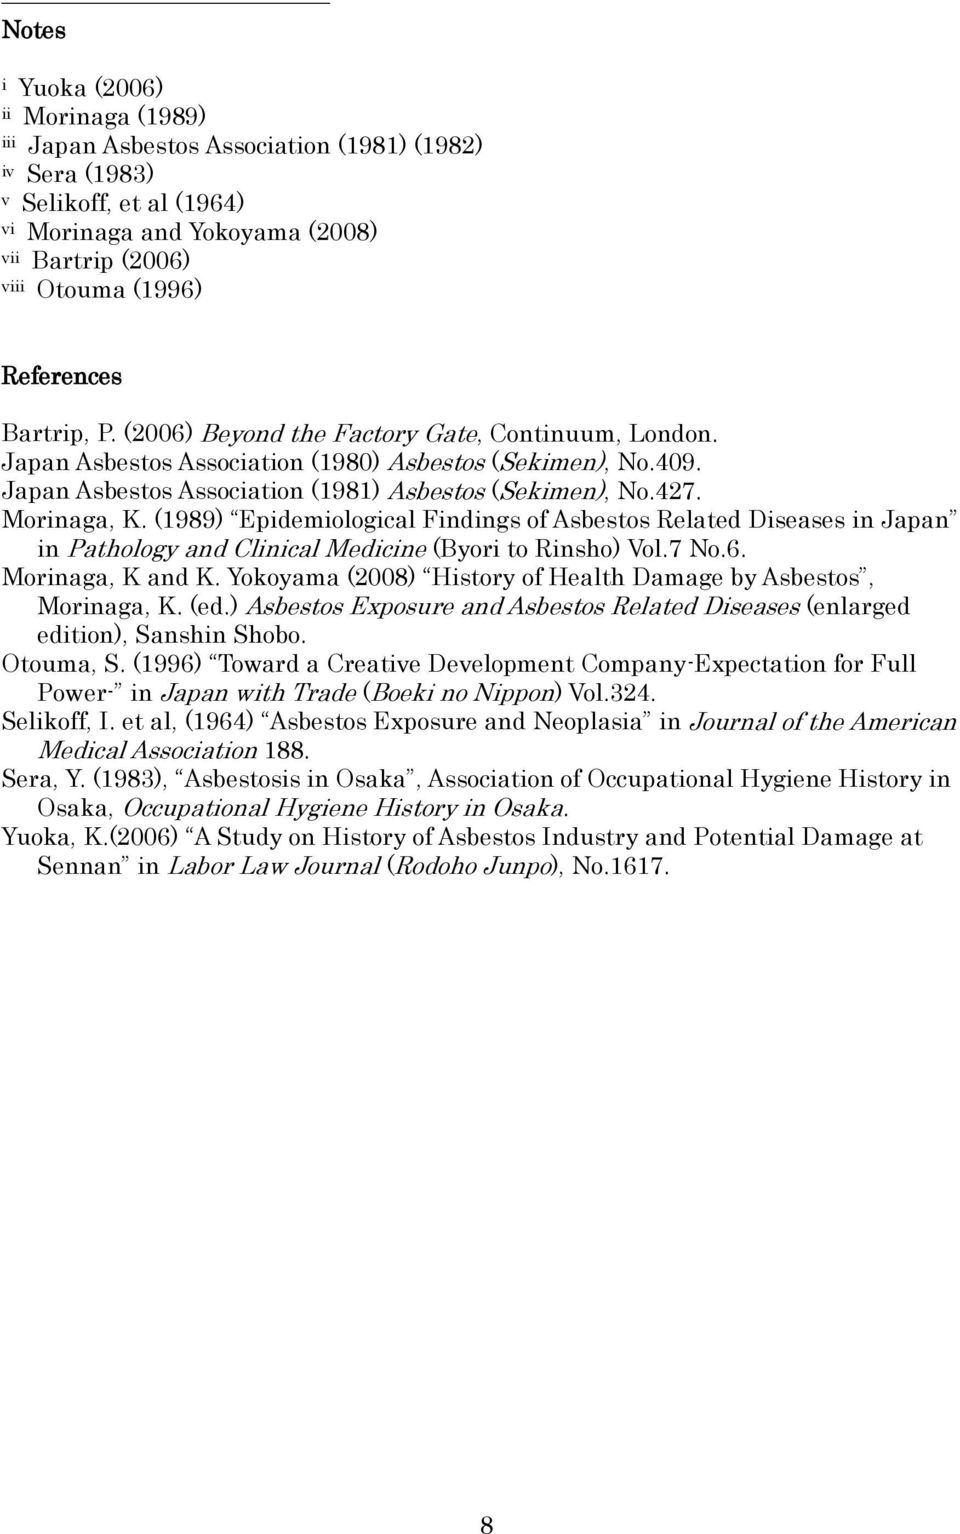 Morinaga, K. (1989) Epidemiological Findings of Asbestos Related Diseases in Japan in Pathology and Clinical Medicine (Byori to Rinsho) Vol.7 No.6. Morinaga, K and K.